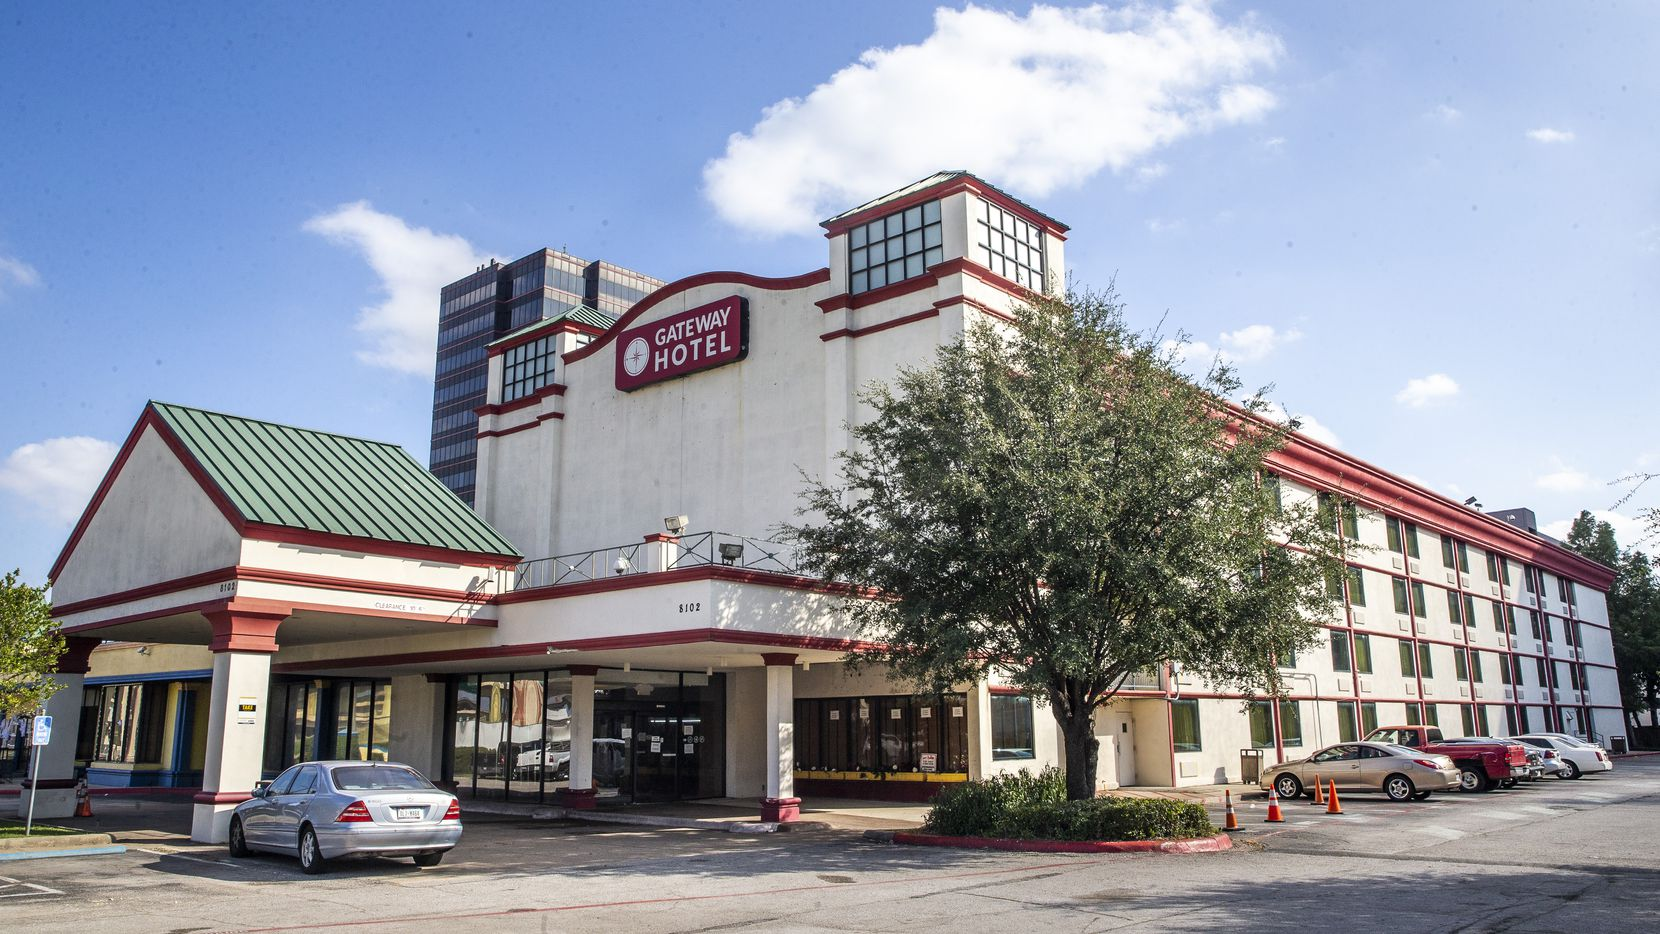 The Gateway Hotel Dallas Park Central located in Dallas on Wednesday, Oct. 21, 2020. Catholic Charities has a new initiative on homelessness that aims to help in particular those who are homeless or housing insecure as a result of the COVID-19 pandemic. Residents will receive three meals daily, full-time case managers and care coordinators will be on-site to assess the need for additional services.